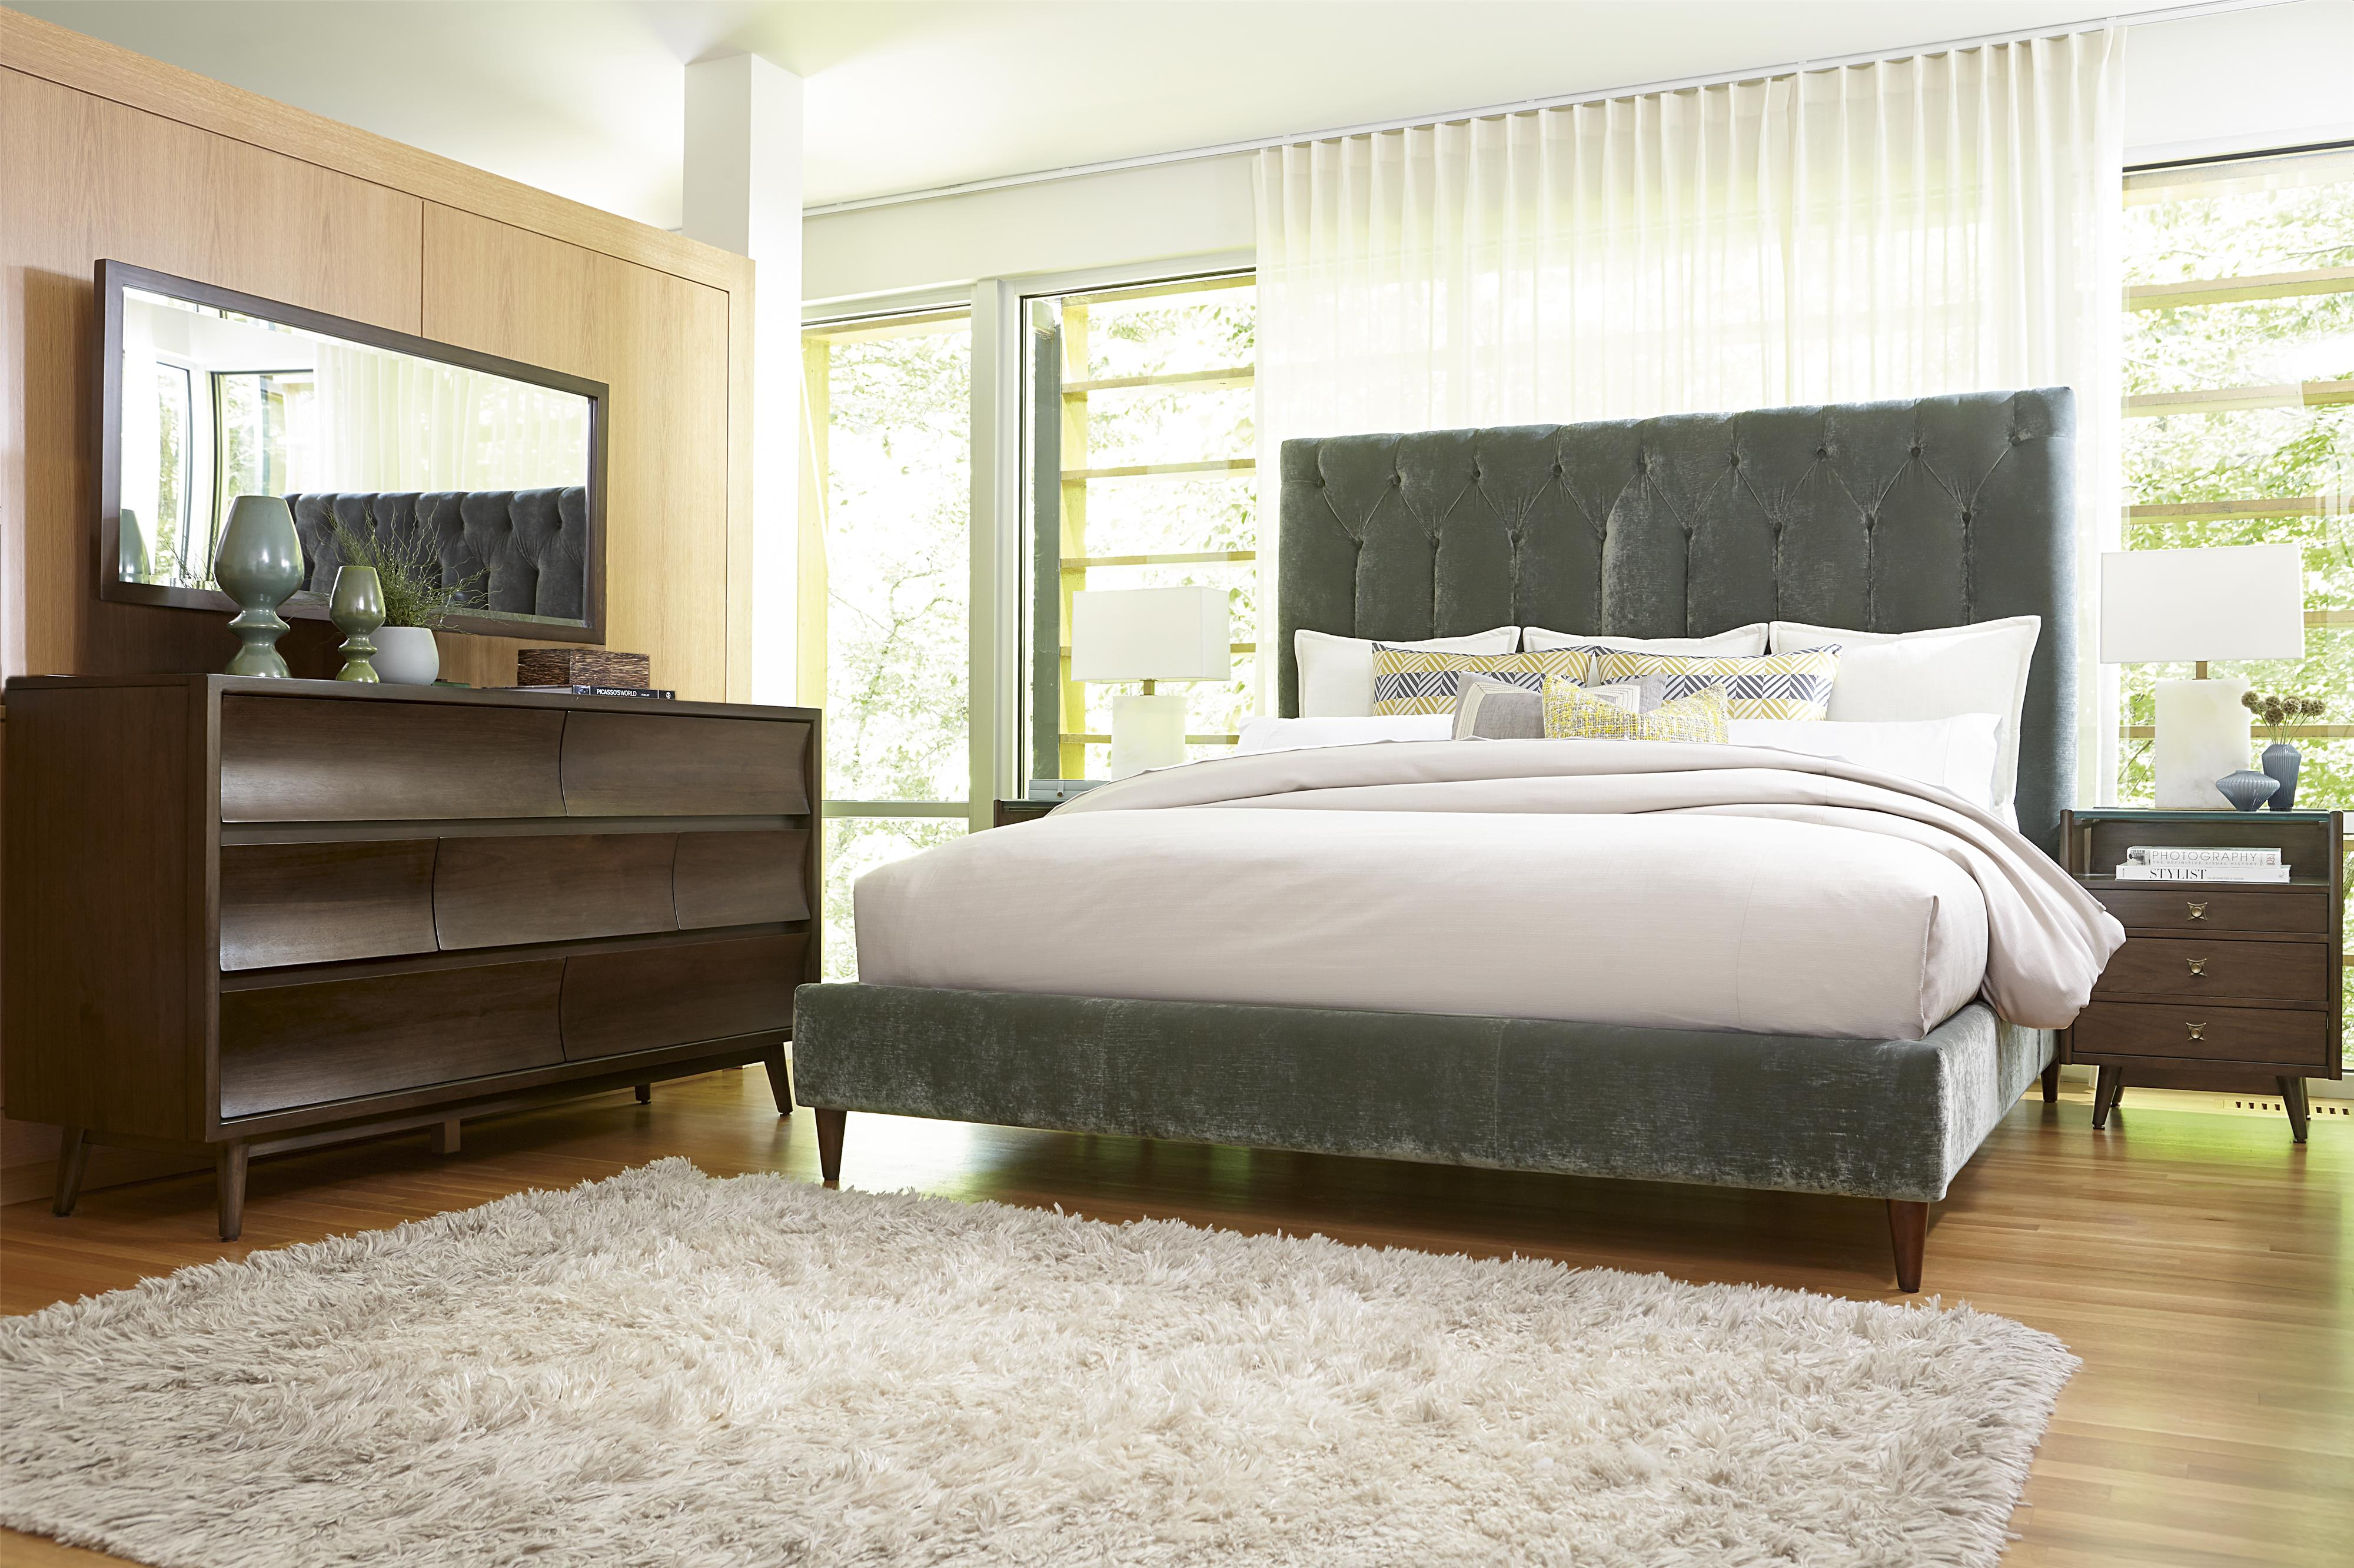 Belfort Signature Urban Treasures Queen Bedroom Group - Item Number: 223000-1812 Q Bedroom Group 3